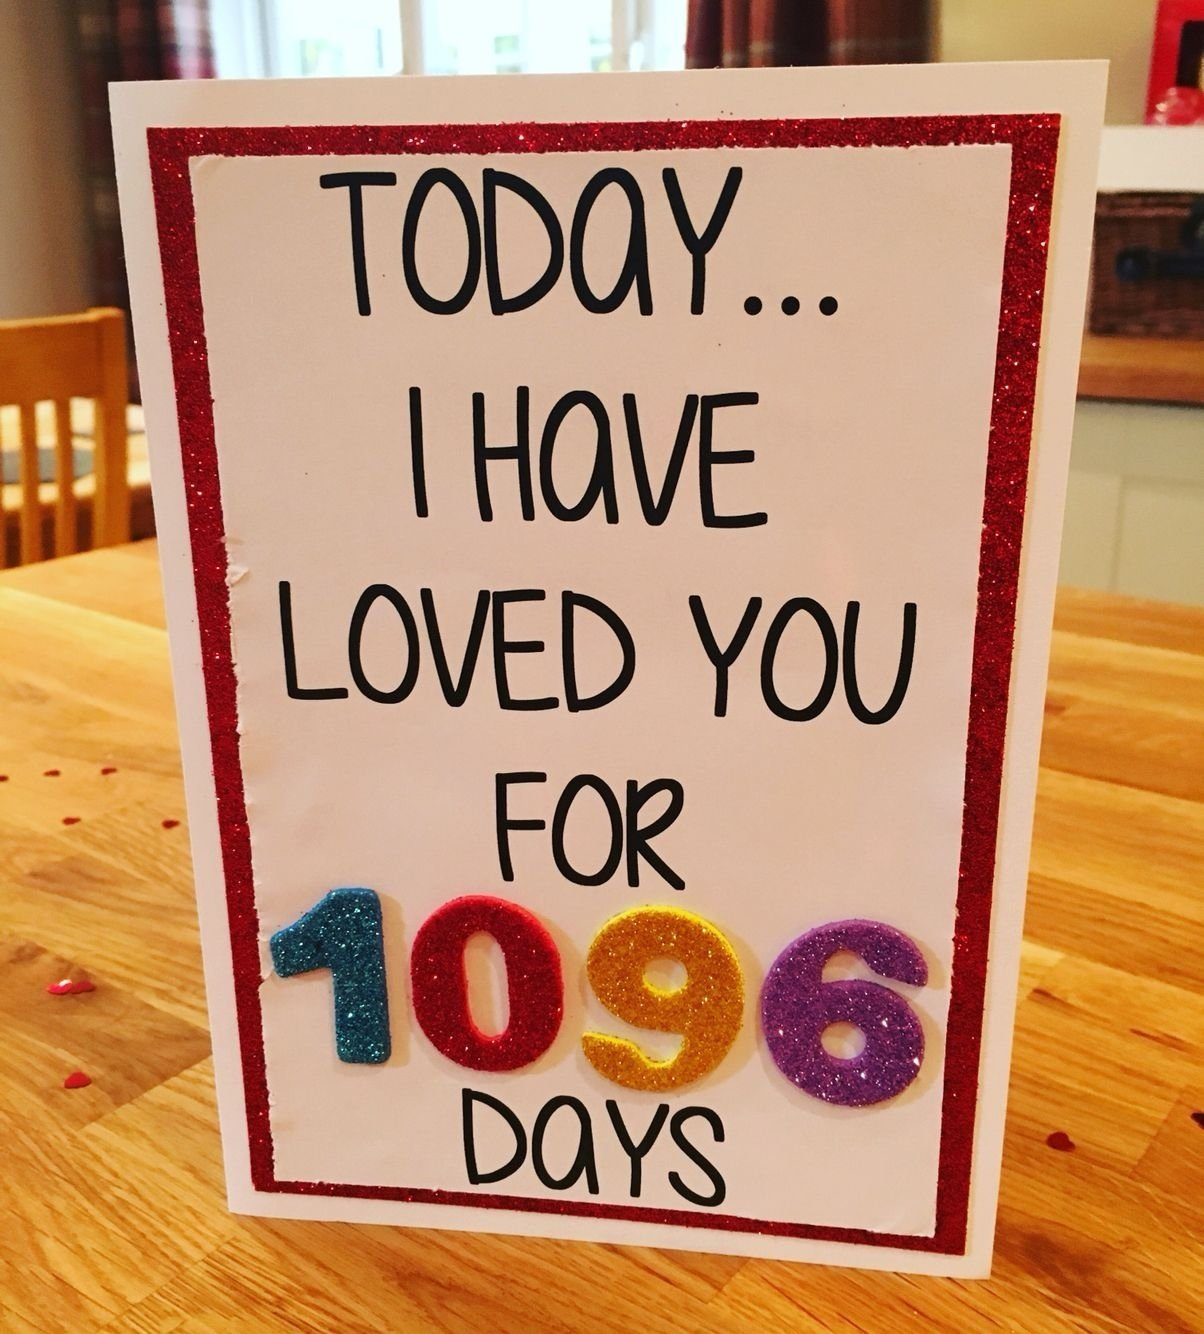 10 Beautiful Third Year Anniversary Gift Ideas 3 year anniversary card today i have loved you for 1096 days x 10 2021